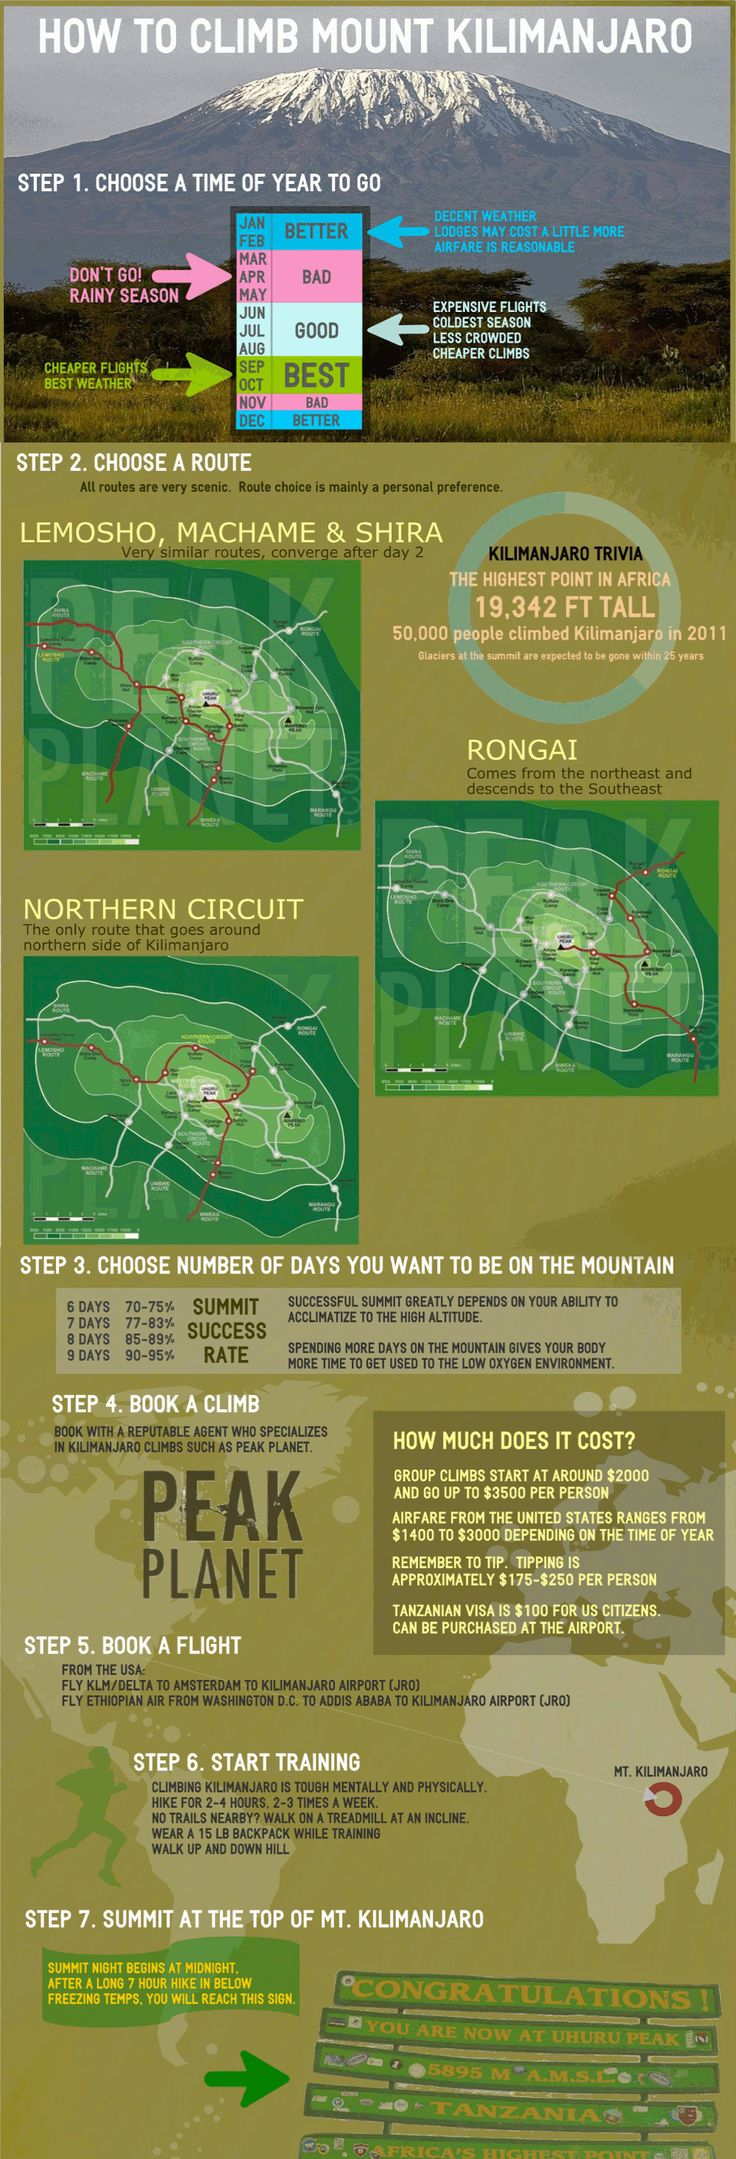 Climbing Mount Kilimanjaro is not as daunting a task as it may seem.  The most frequently asked questions by aspiring climbers are all answered in a simple easy to follow graphic.